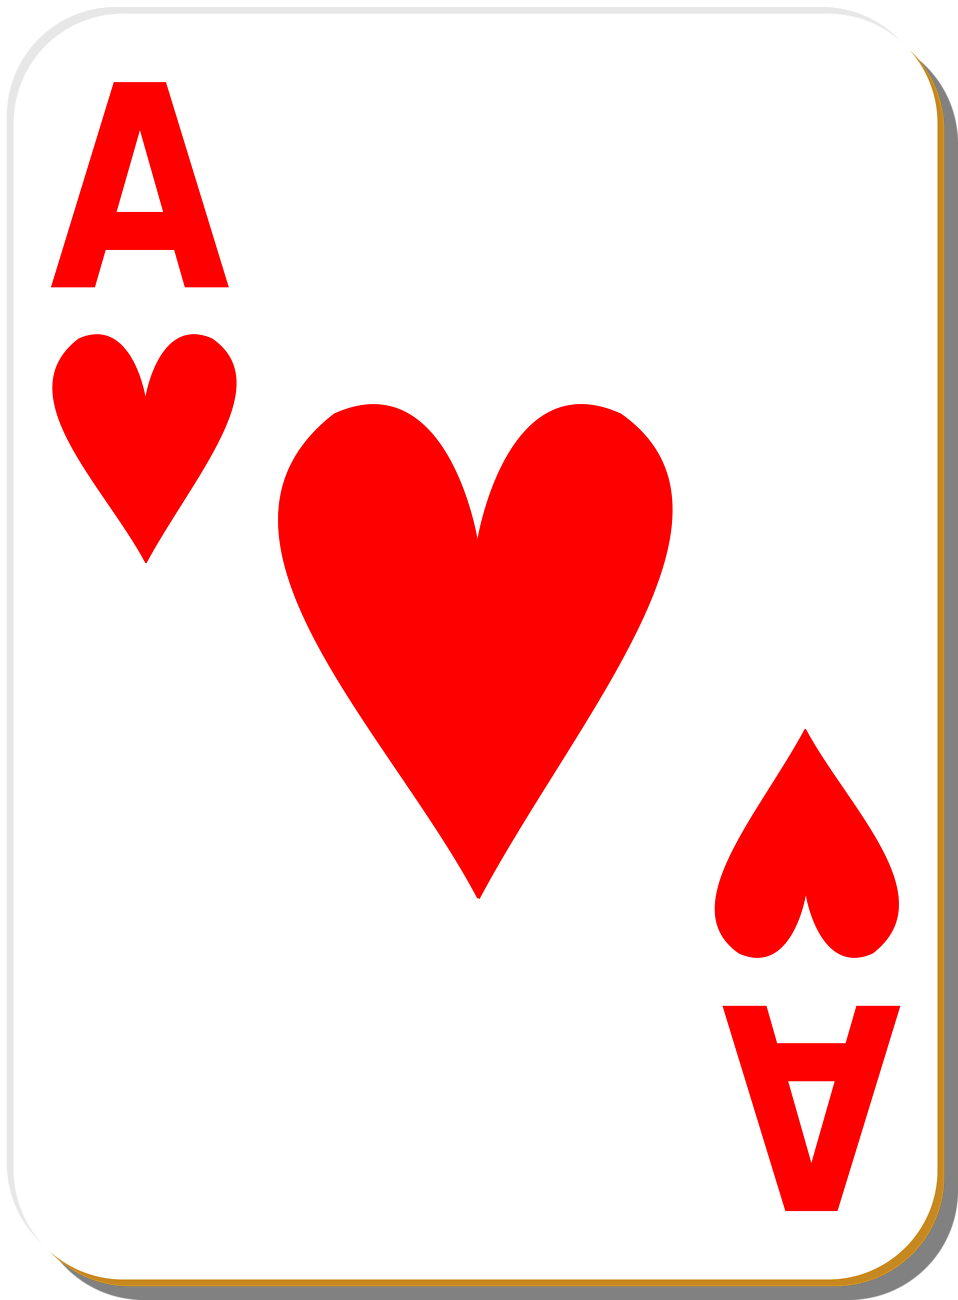 Ace Heart Playing Card Clip Art in 2019.